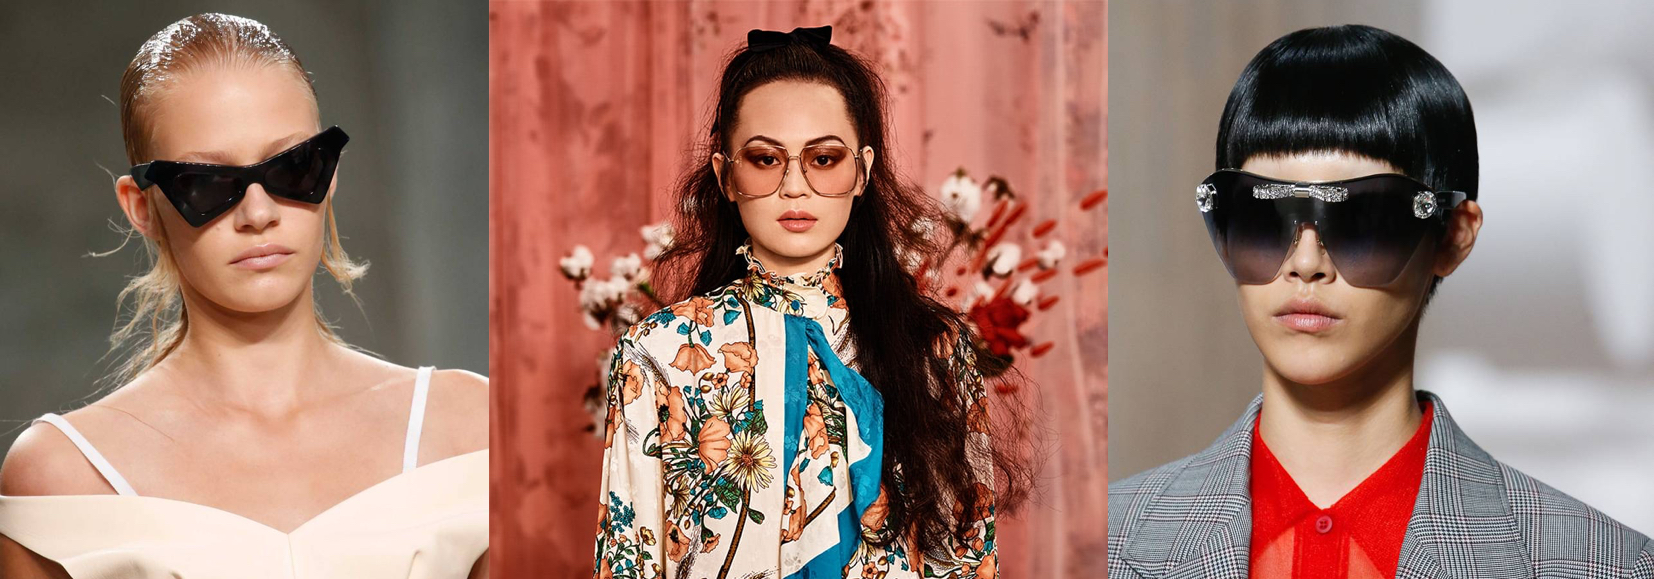 Cateye Our Prediction of 2019 Eyewear Trends Glasses Sunglasses Eyewear Shop Online 70s Big Square